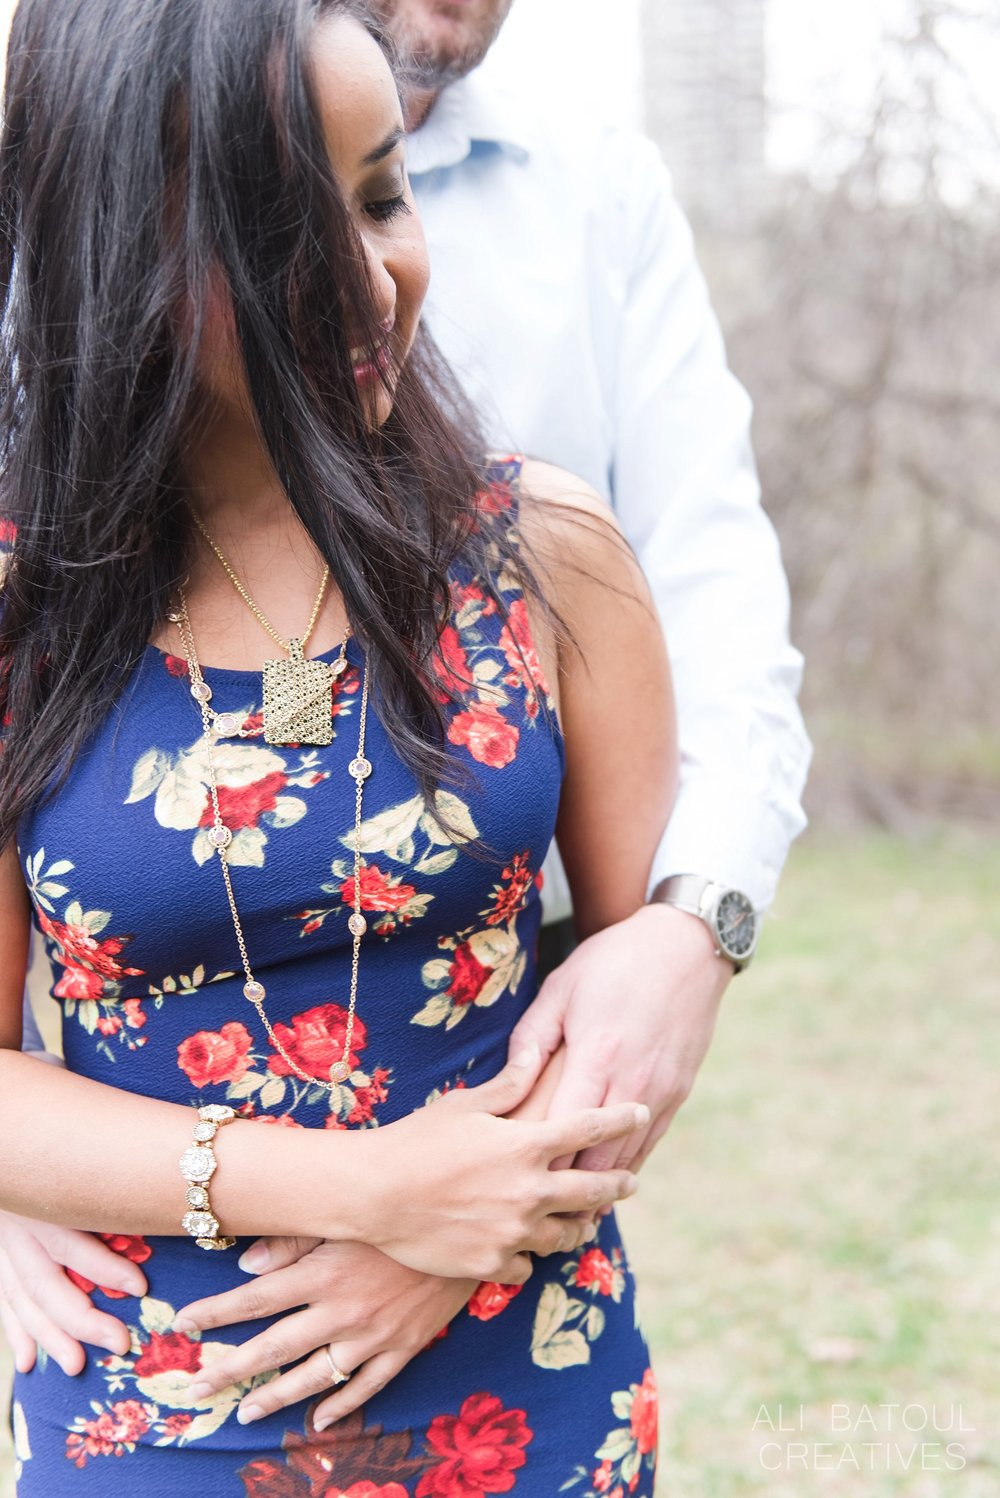 Uzma + Ian Engagement - Ali Batoul Creatives Fine Art Wedding Photography_0199.jpg